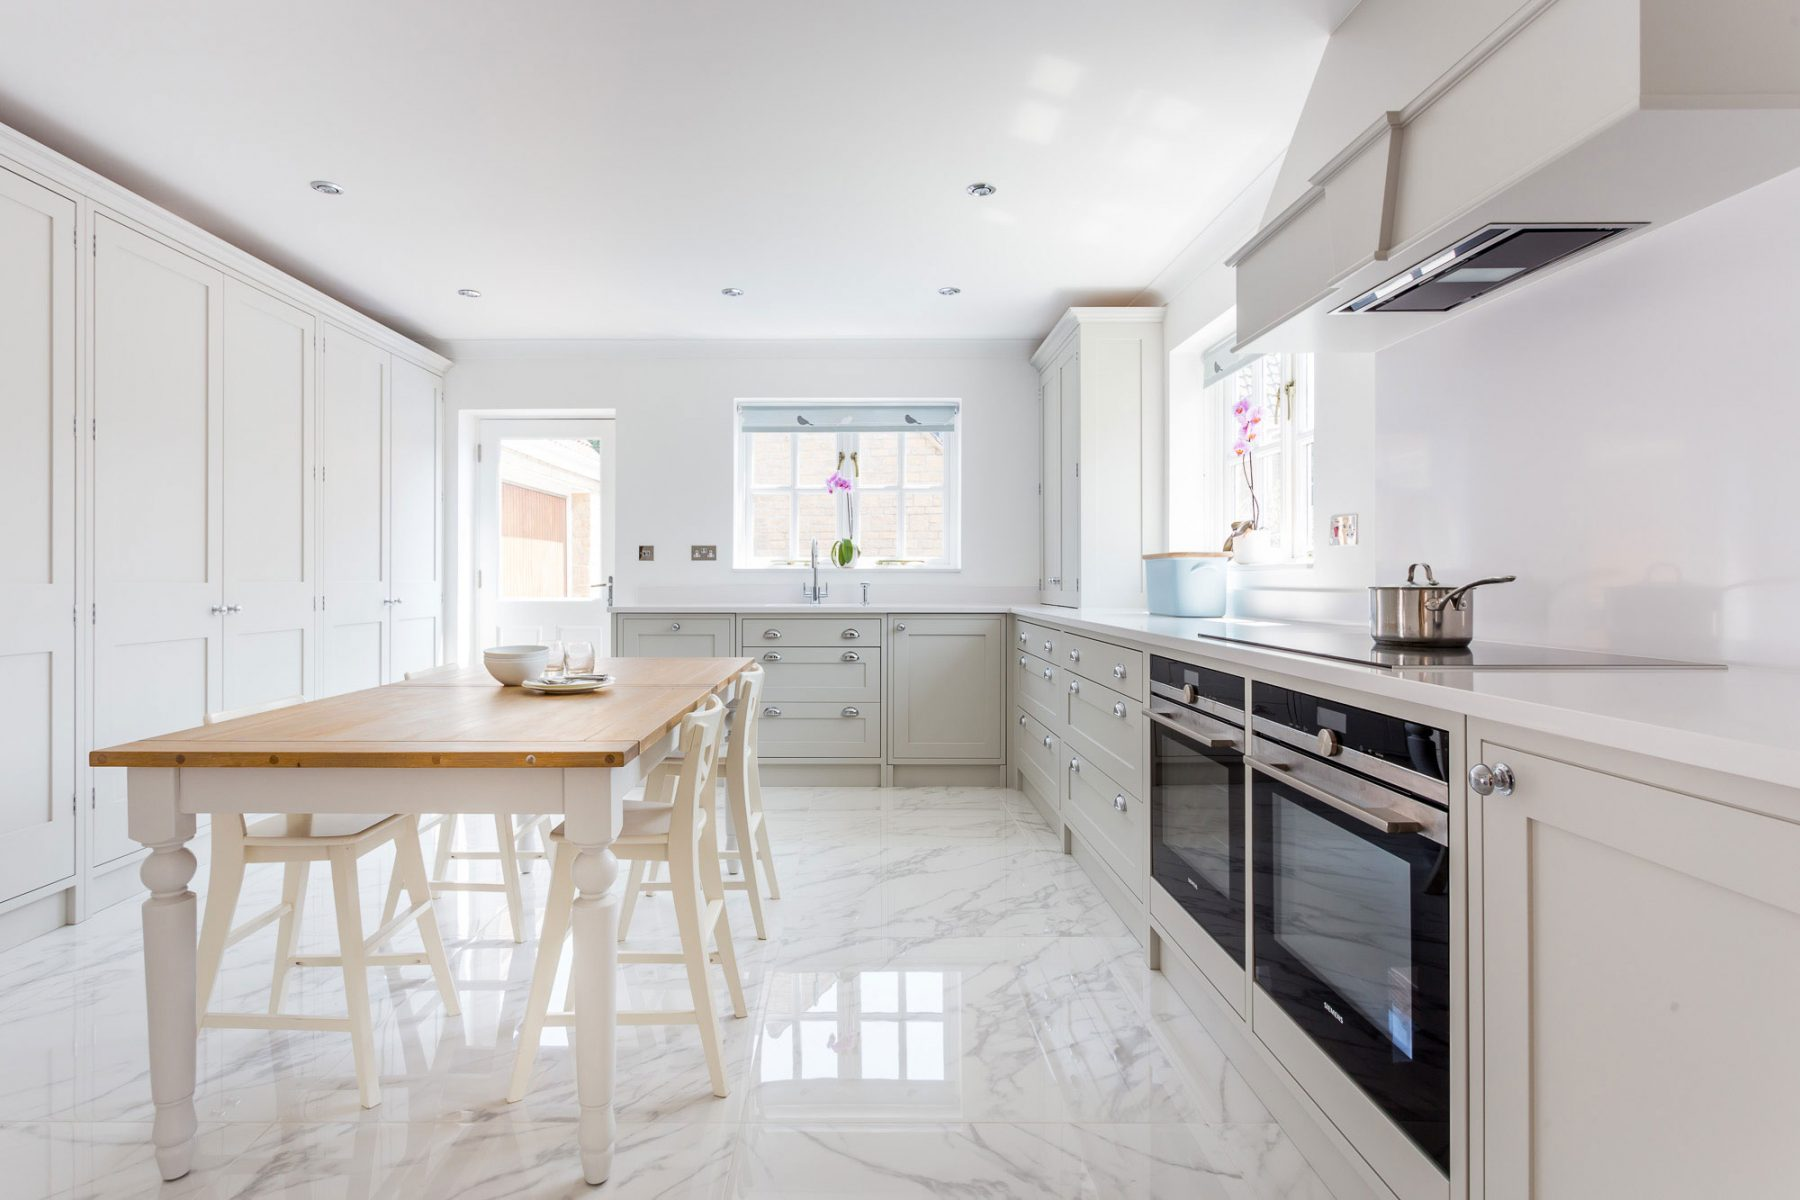 White Marble Kitchen Floors Off White Shaker Kitchen